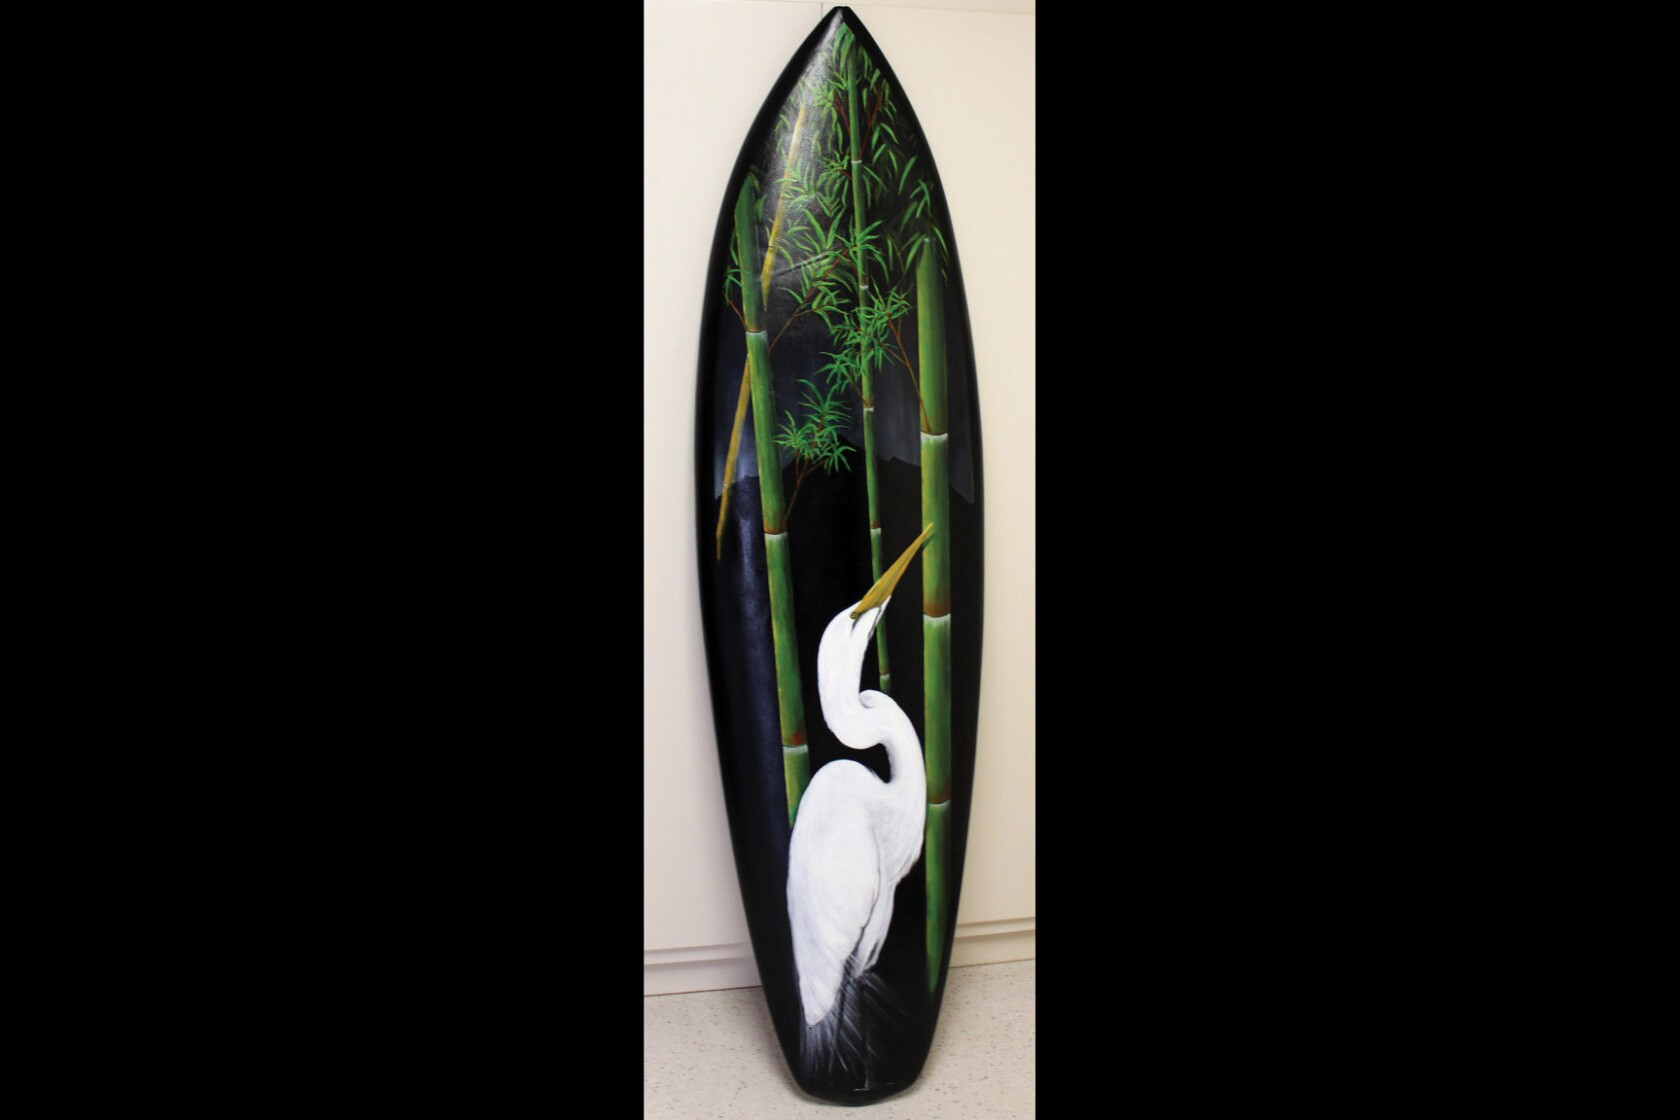 California: Surfboards turned into works of art in Morro Bay